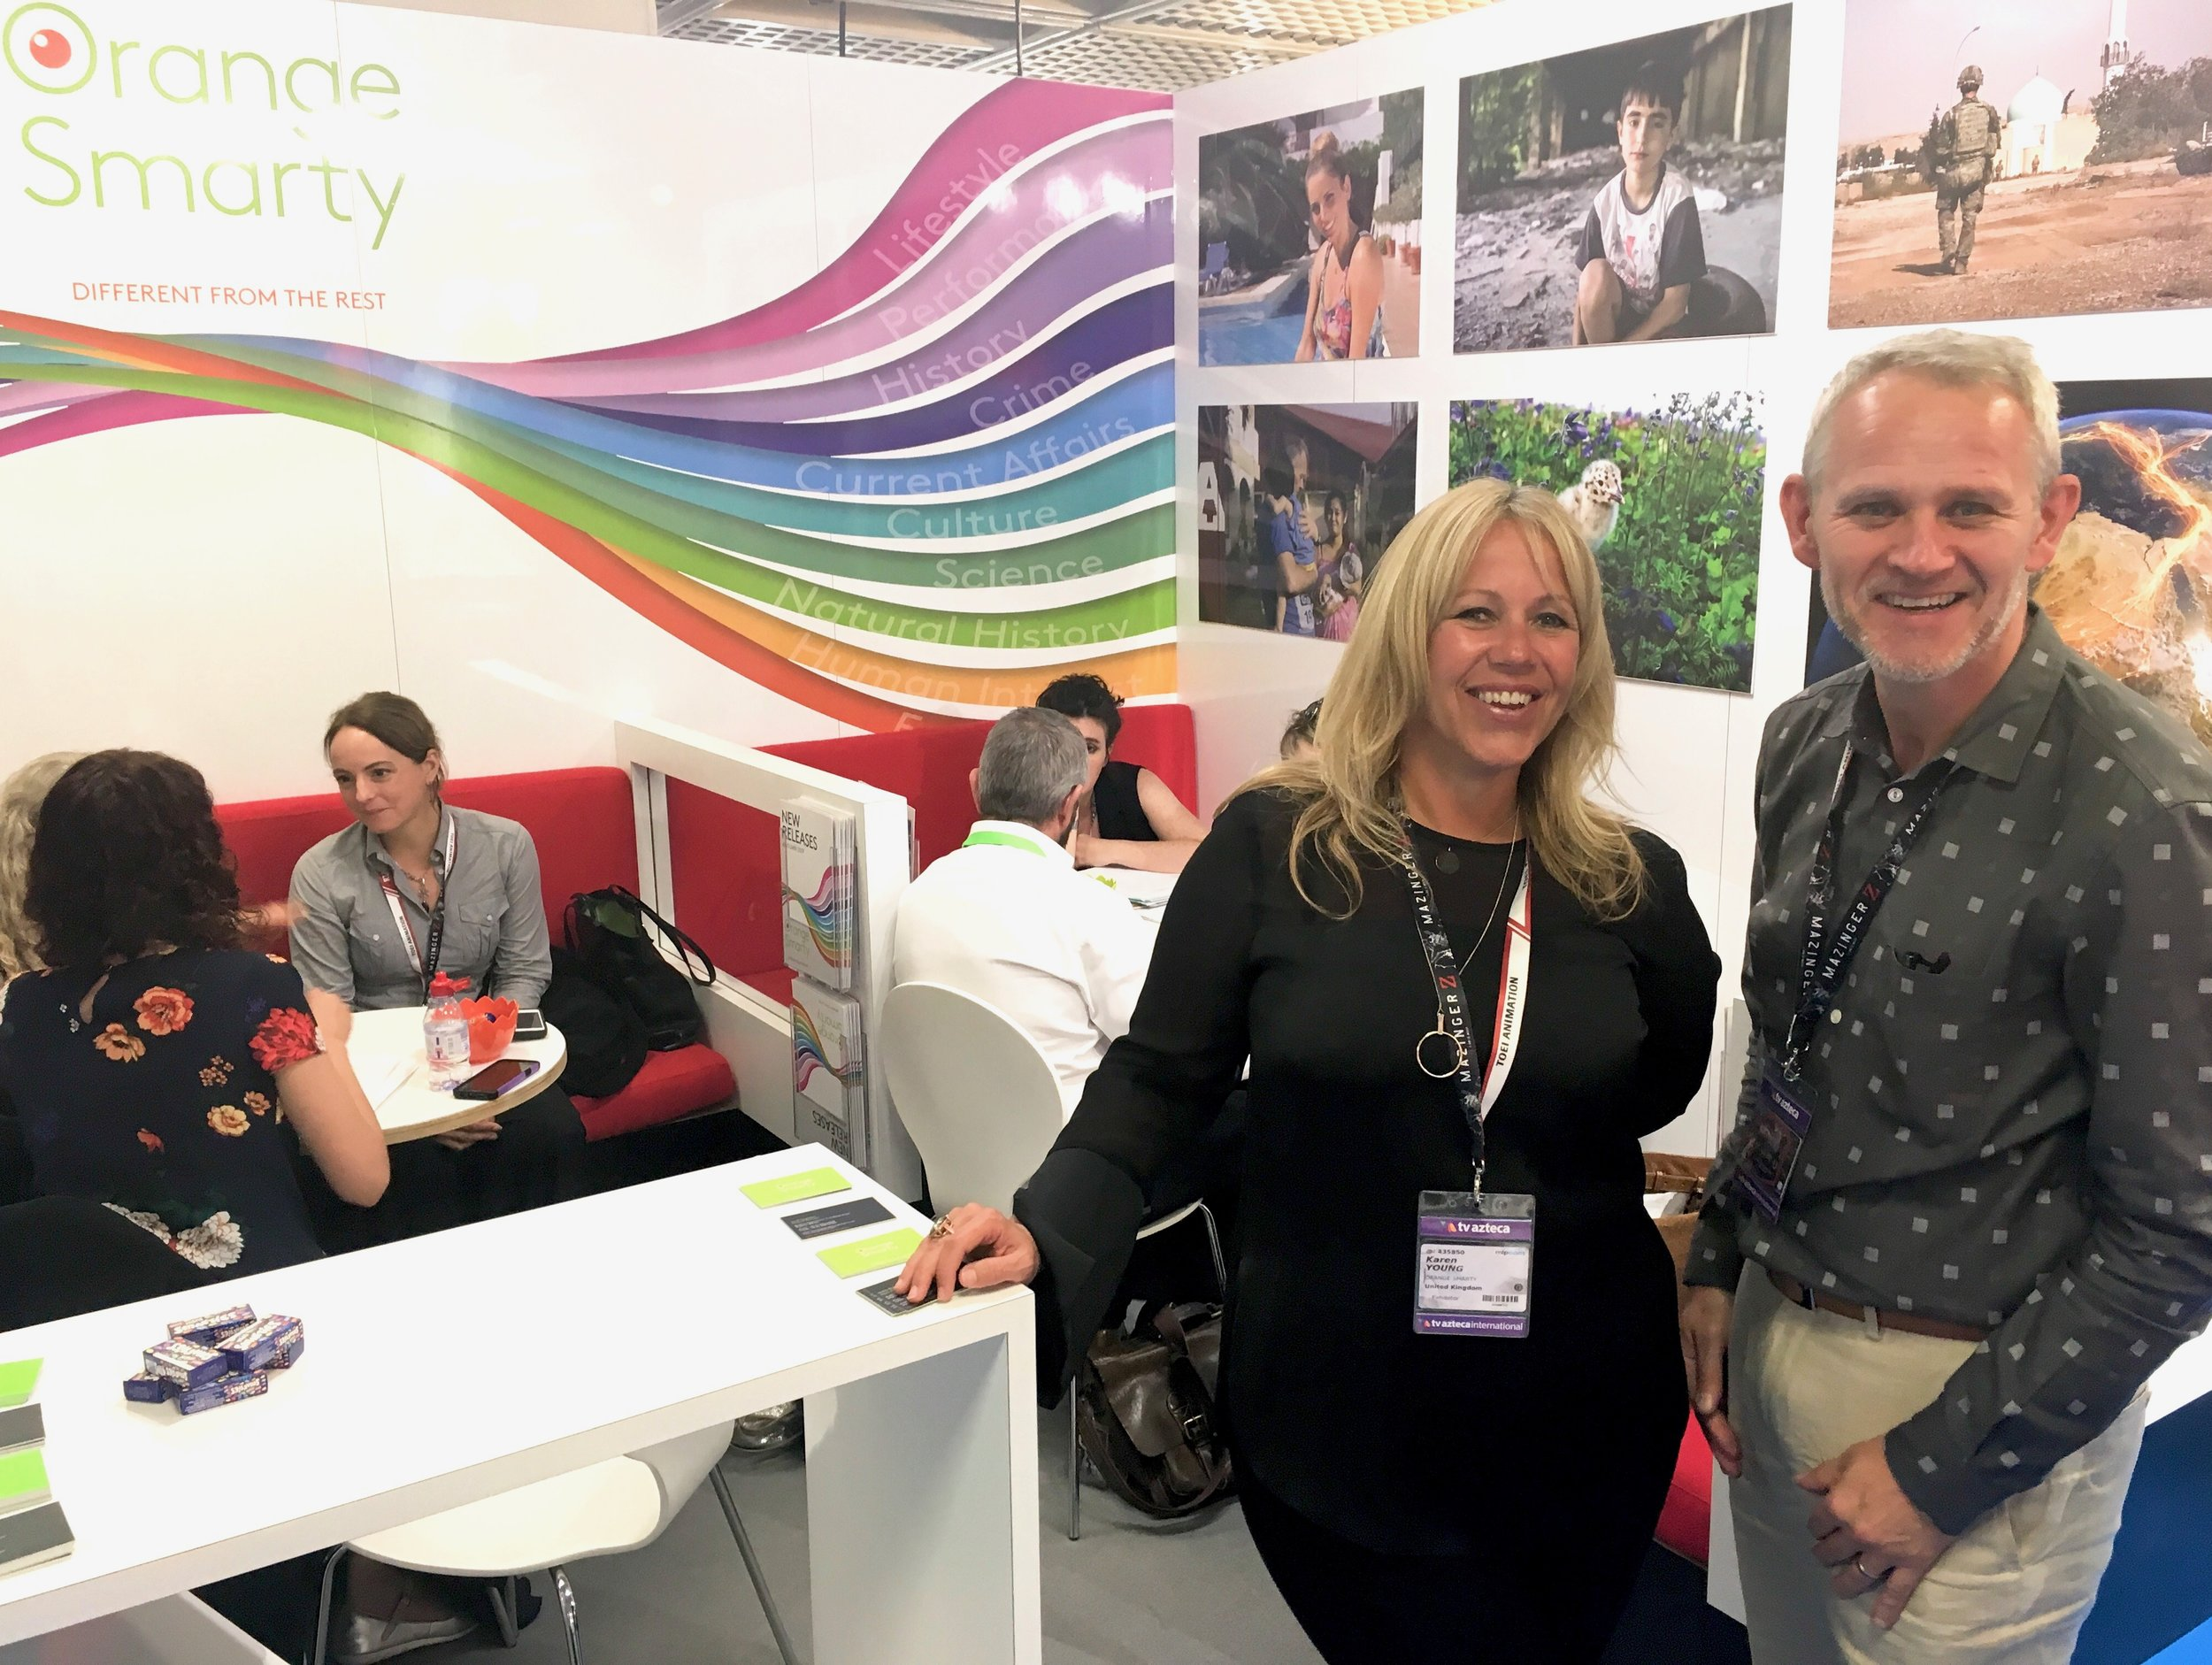 Karen Young  (MD - Orange Smarty)and  Andy Harwood  (VP,Business Development - Compact) at MIPCOM